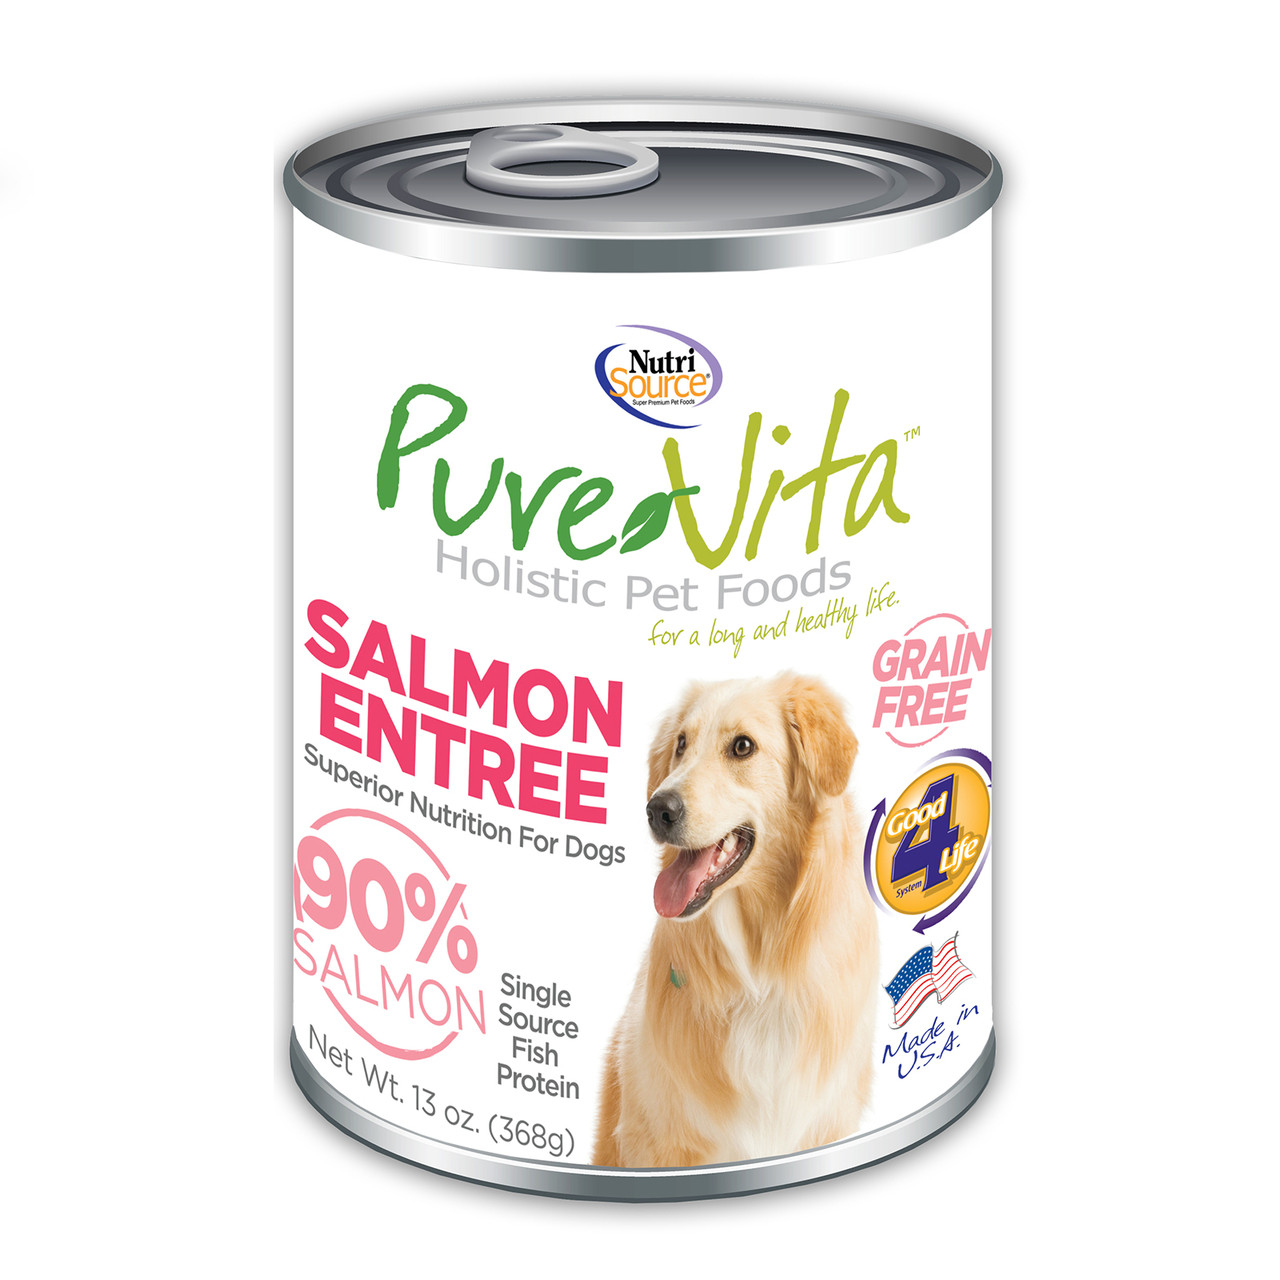 click here to shop PureVita Salmon Entree Canned Dog Food